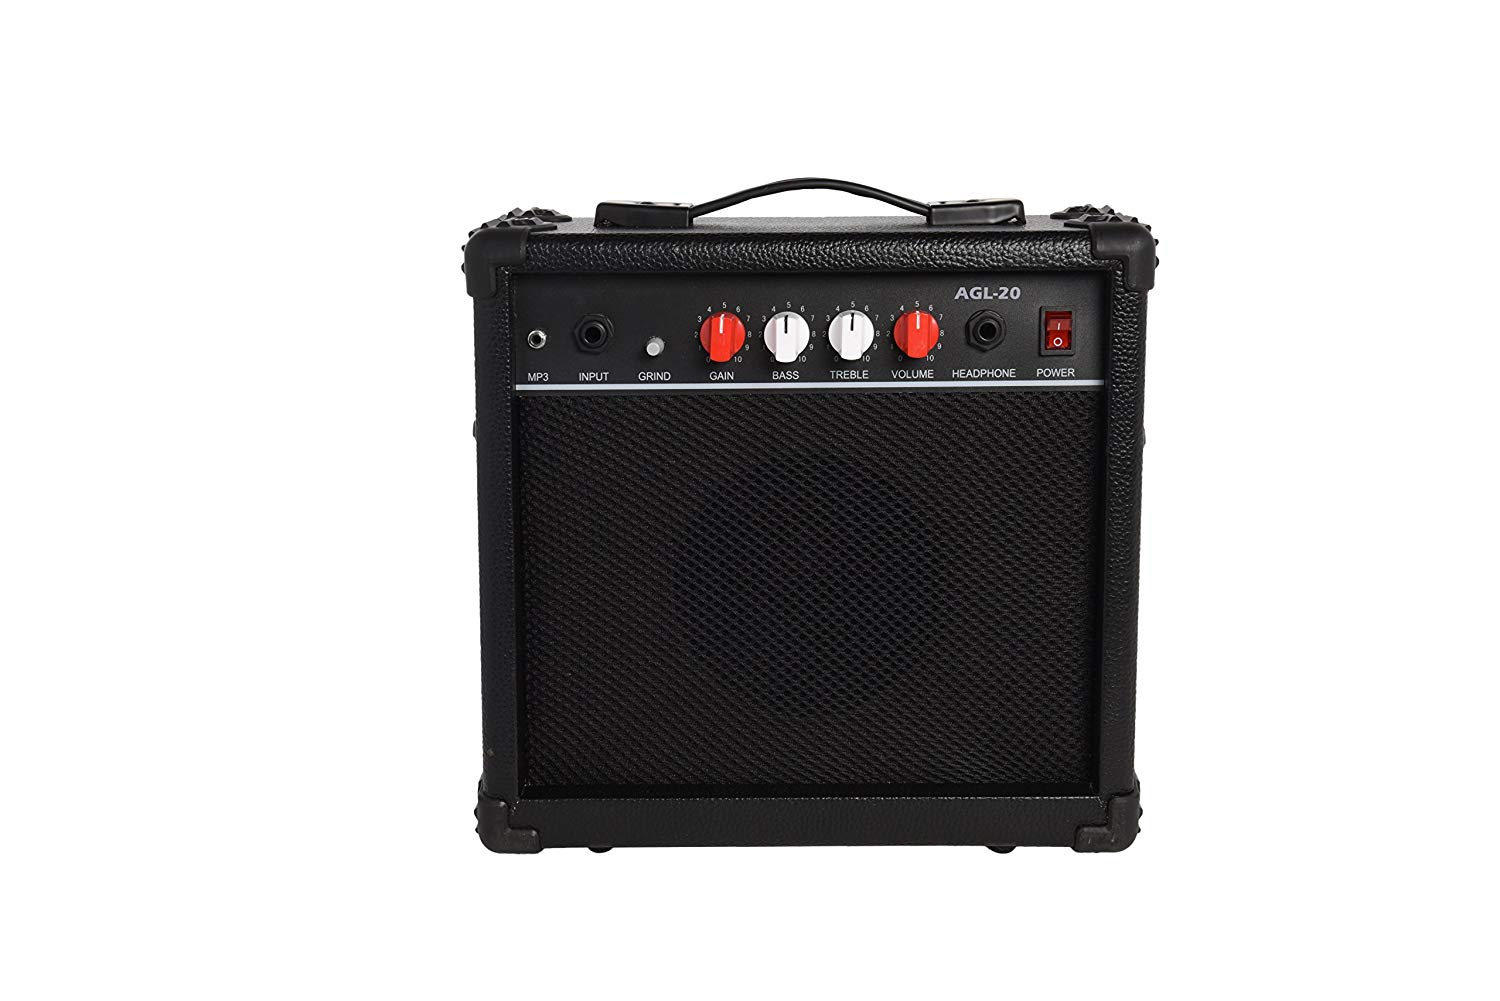 Amplifier for the Black LyxPro Electric Guitar